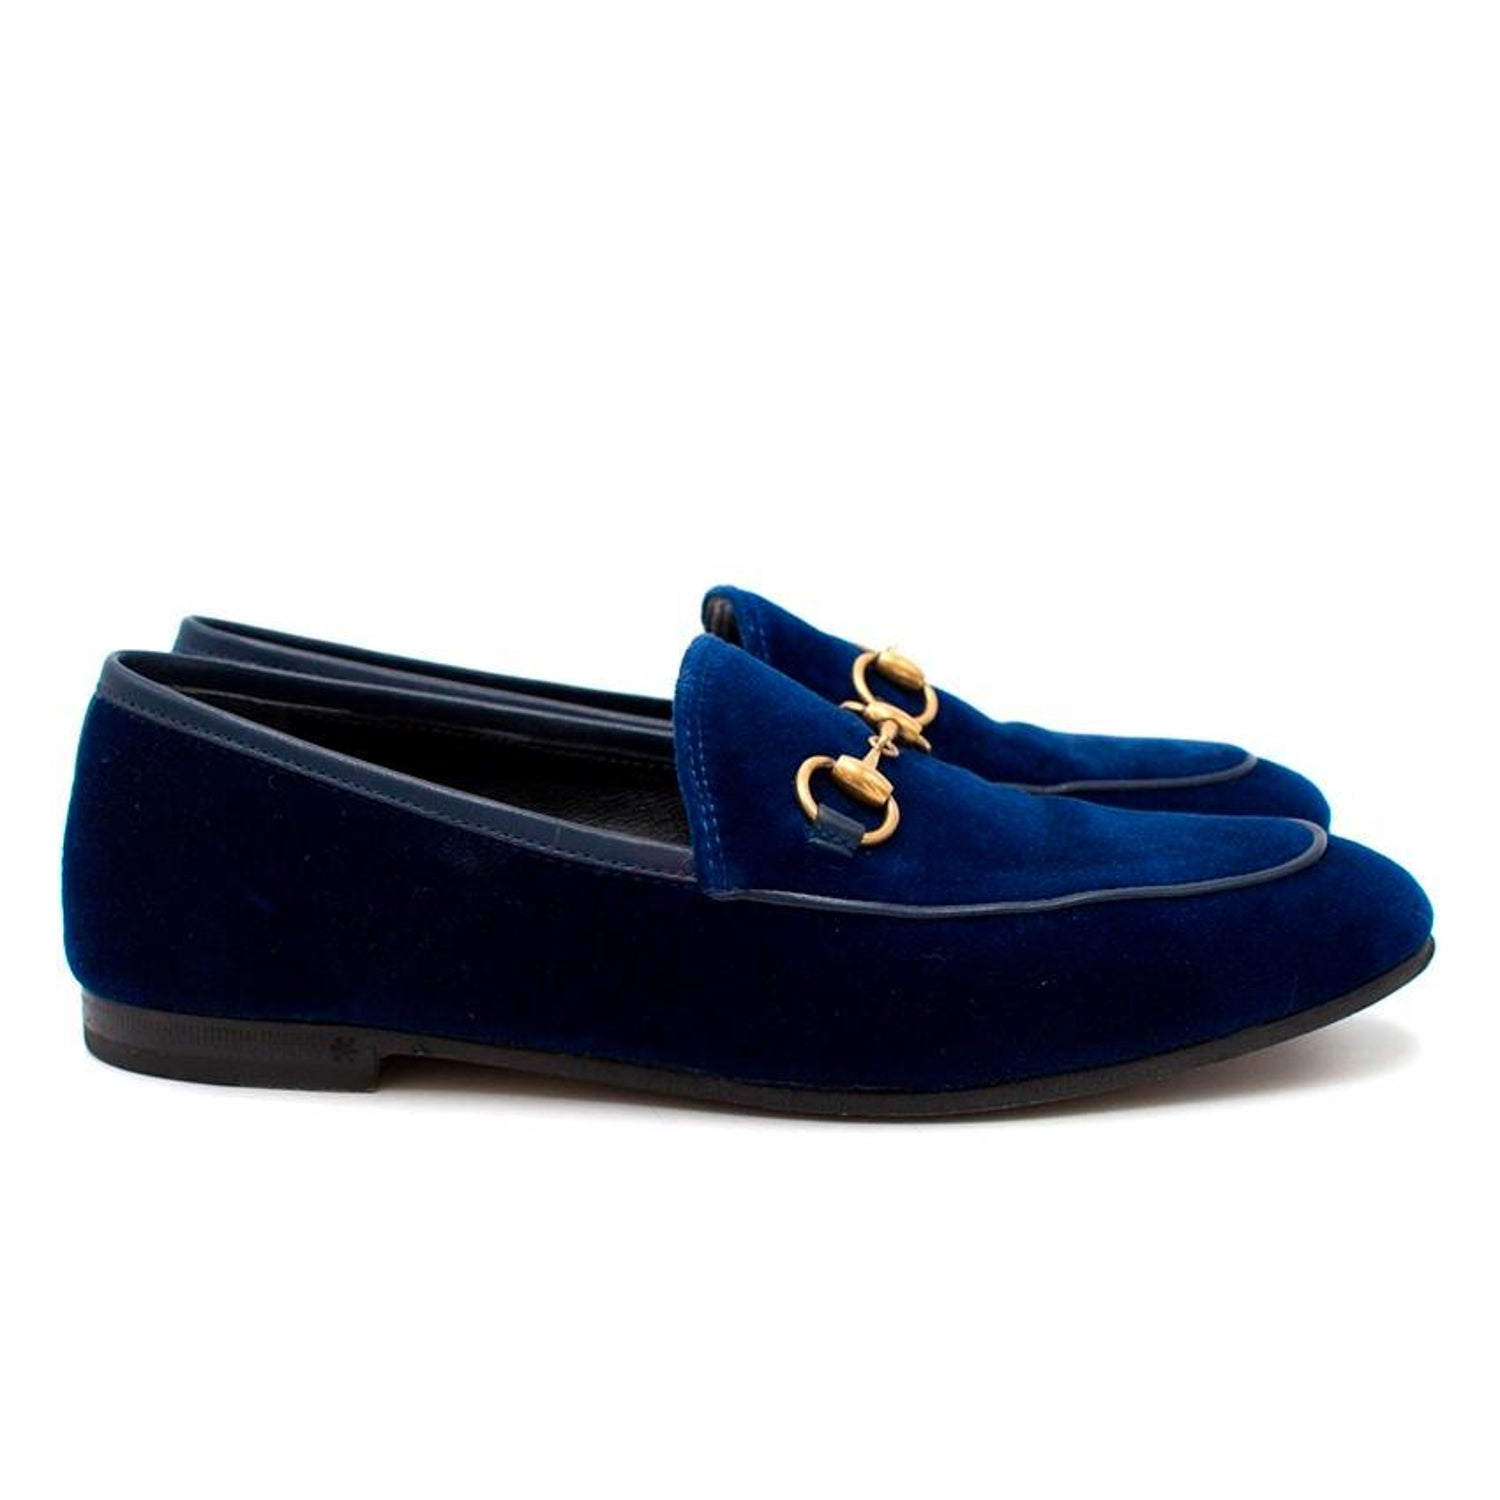 698ab3ae07b Gucci Jordaan Velvet Loafers US 5.5 For Sale at 1stdibs